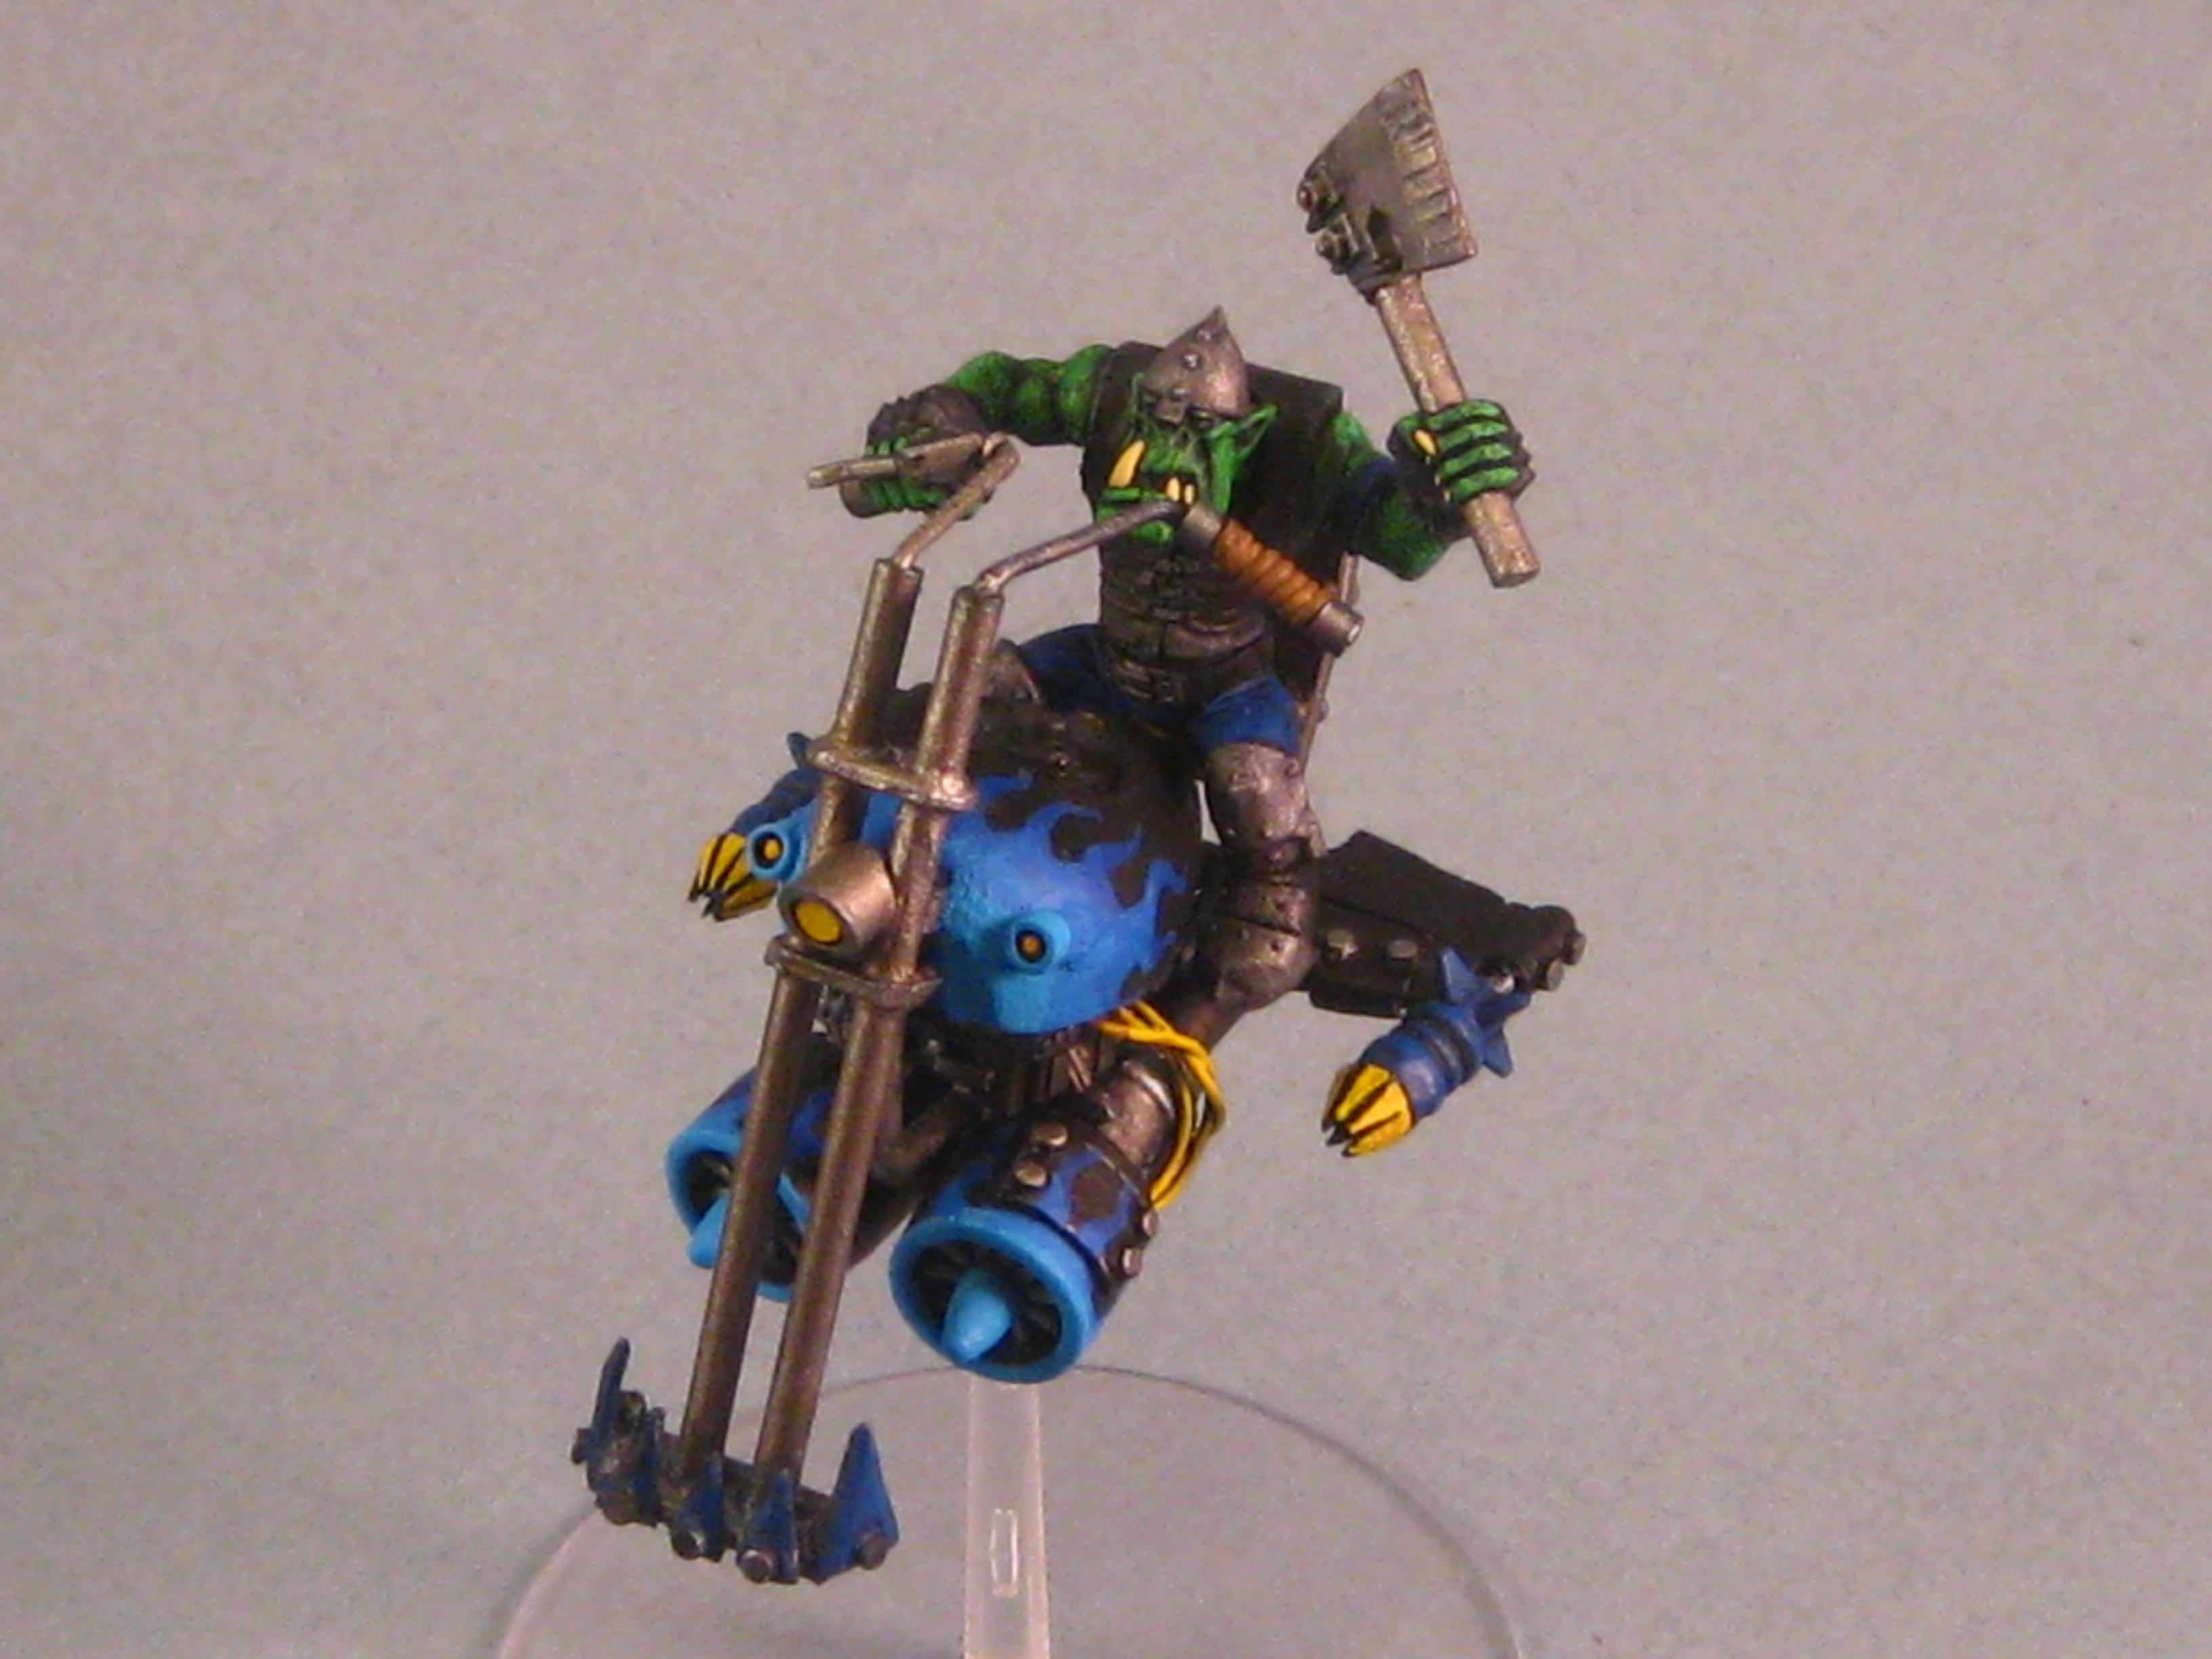 Chopper, Conversion, Deffkopta, Flames, Jetbike, Orks, Paint In Progress, Work In Progress